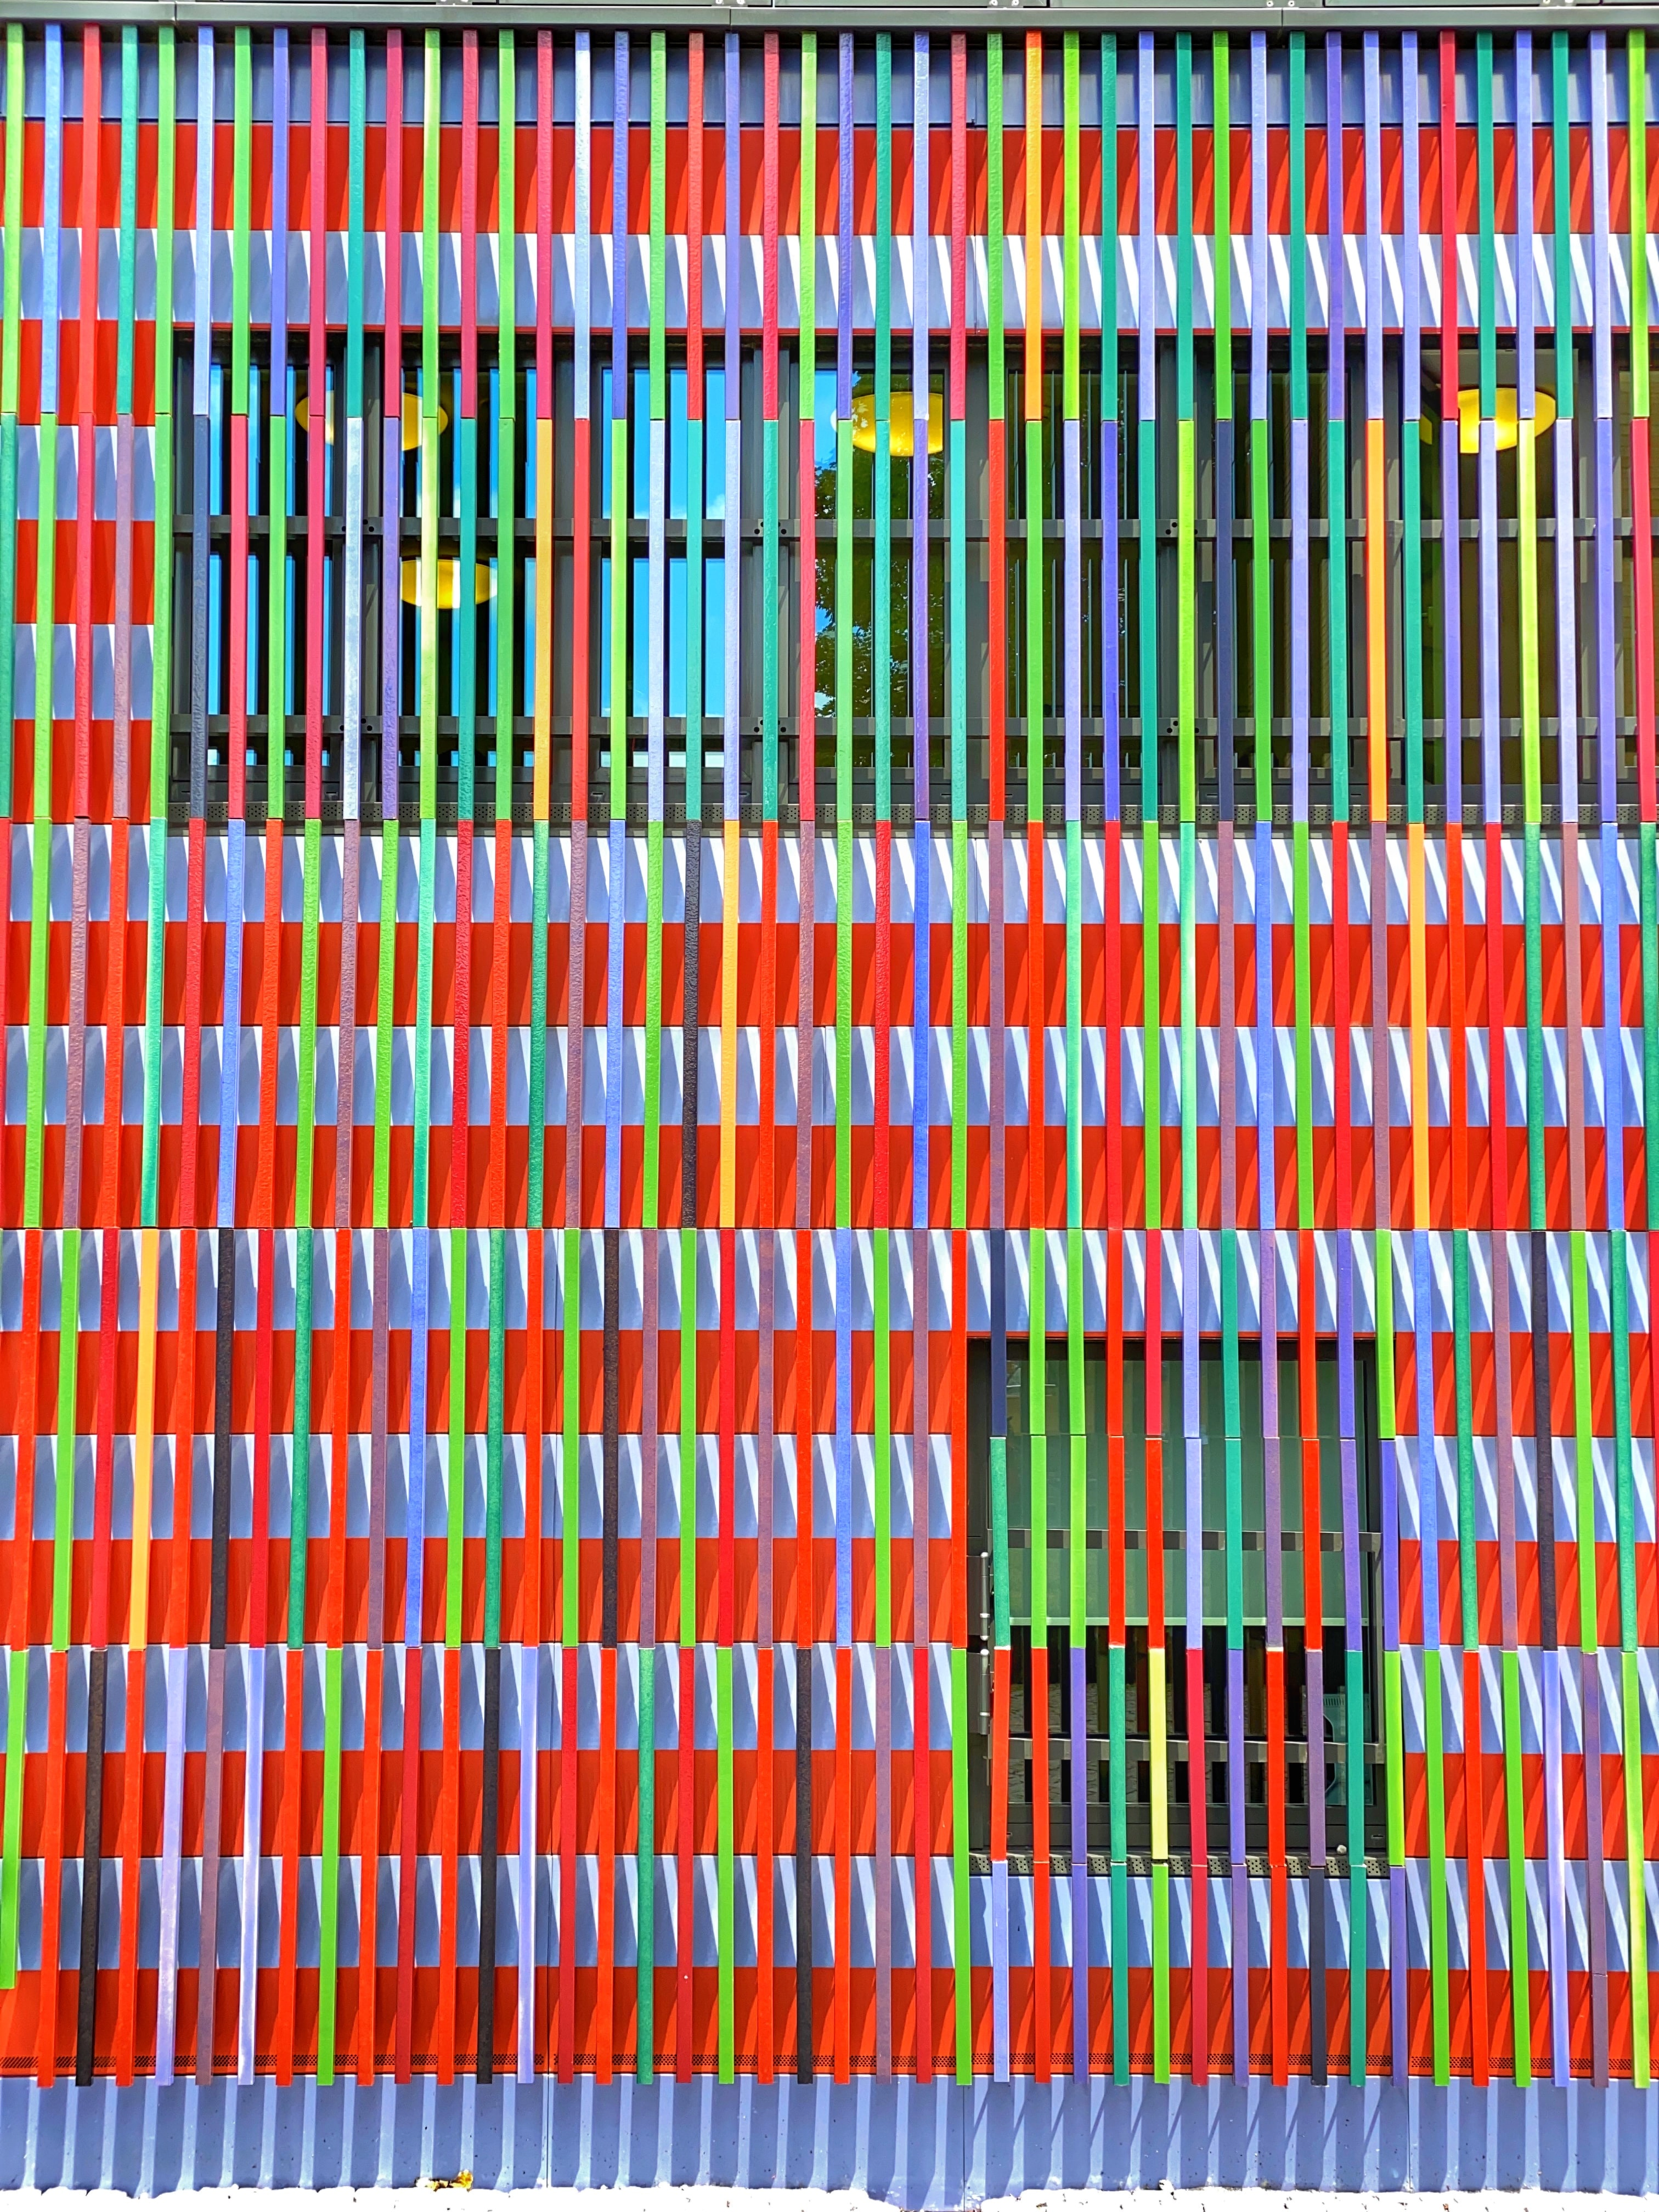 134526 download wallpaper Miscellanea, Miscellaneous, Facade, Window, Multicolored, Motley, Planks, Board, Stripes, Streaks screensavers and pictures for free